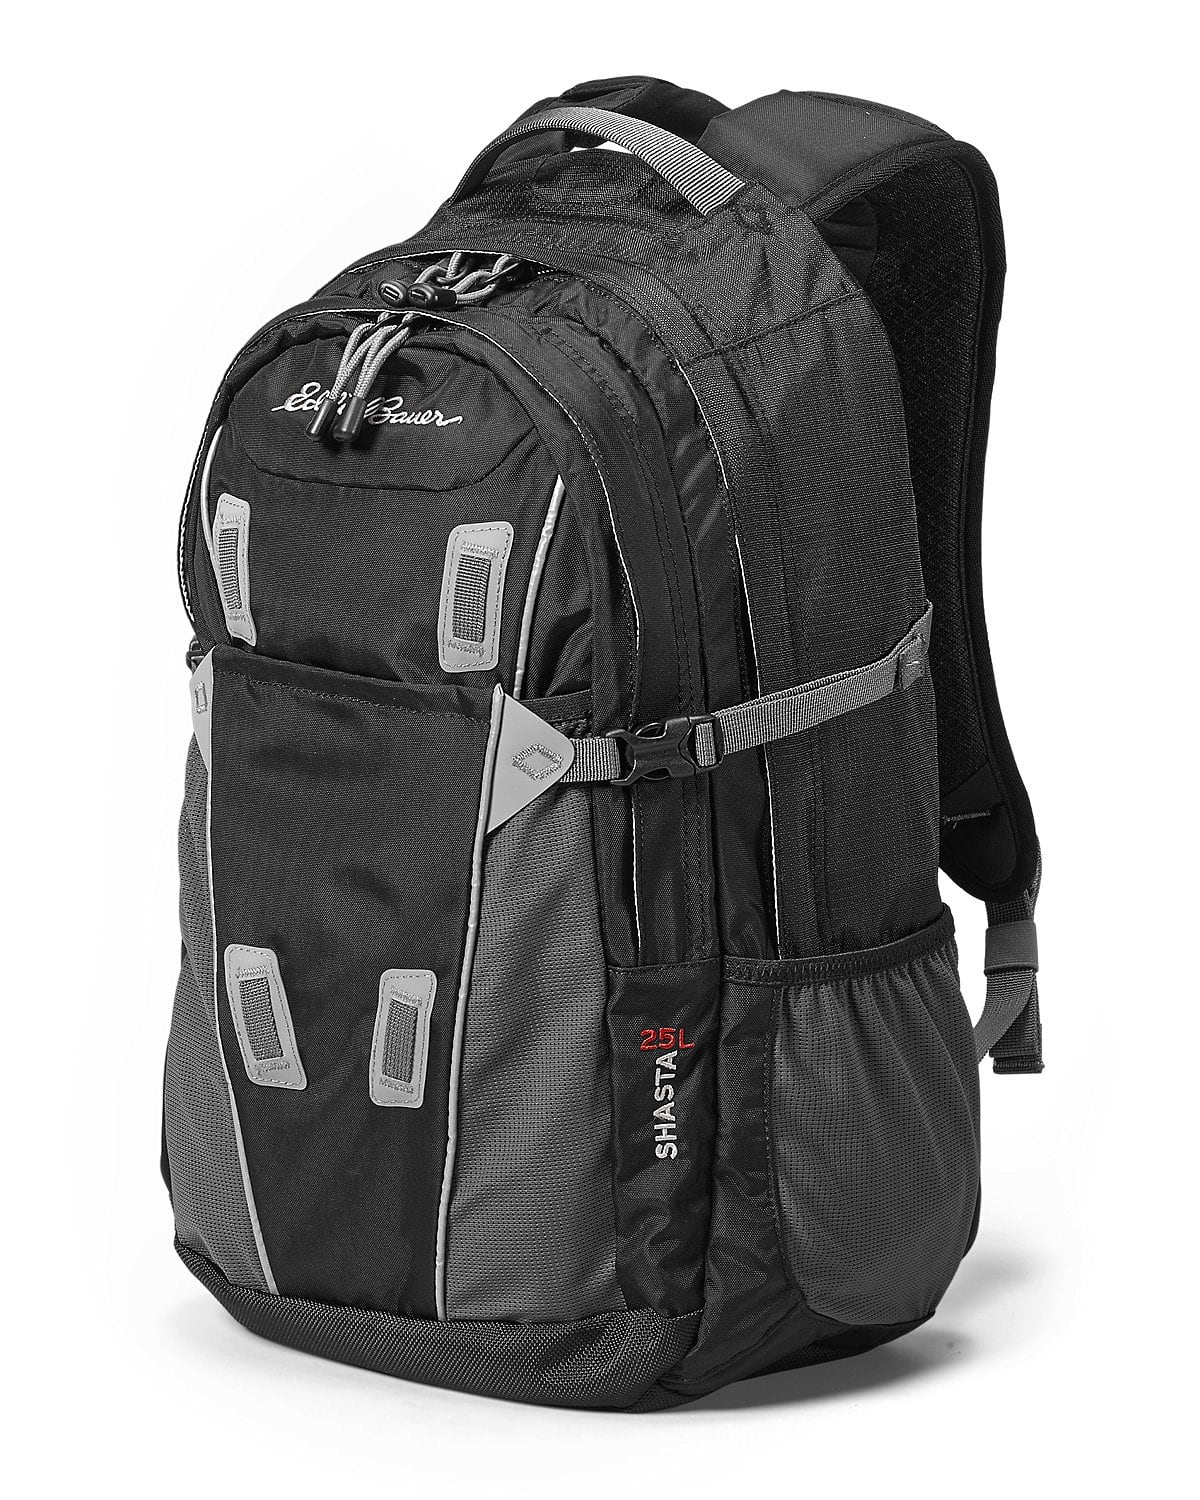 eddiebauer SHASTA back PACK 32.99 after 40% off and shop runner two day free ship